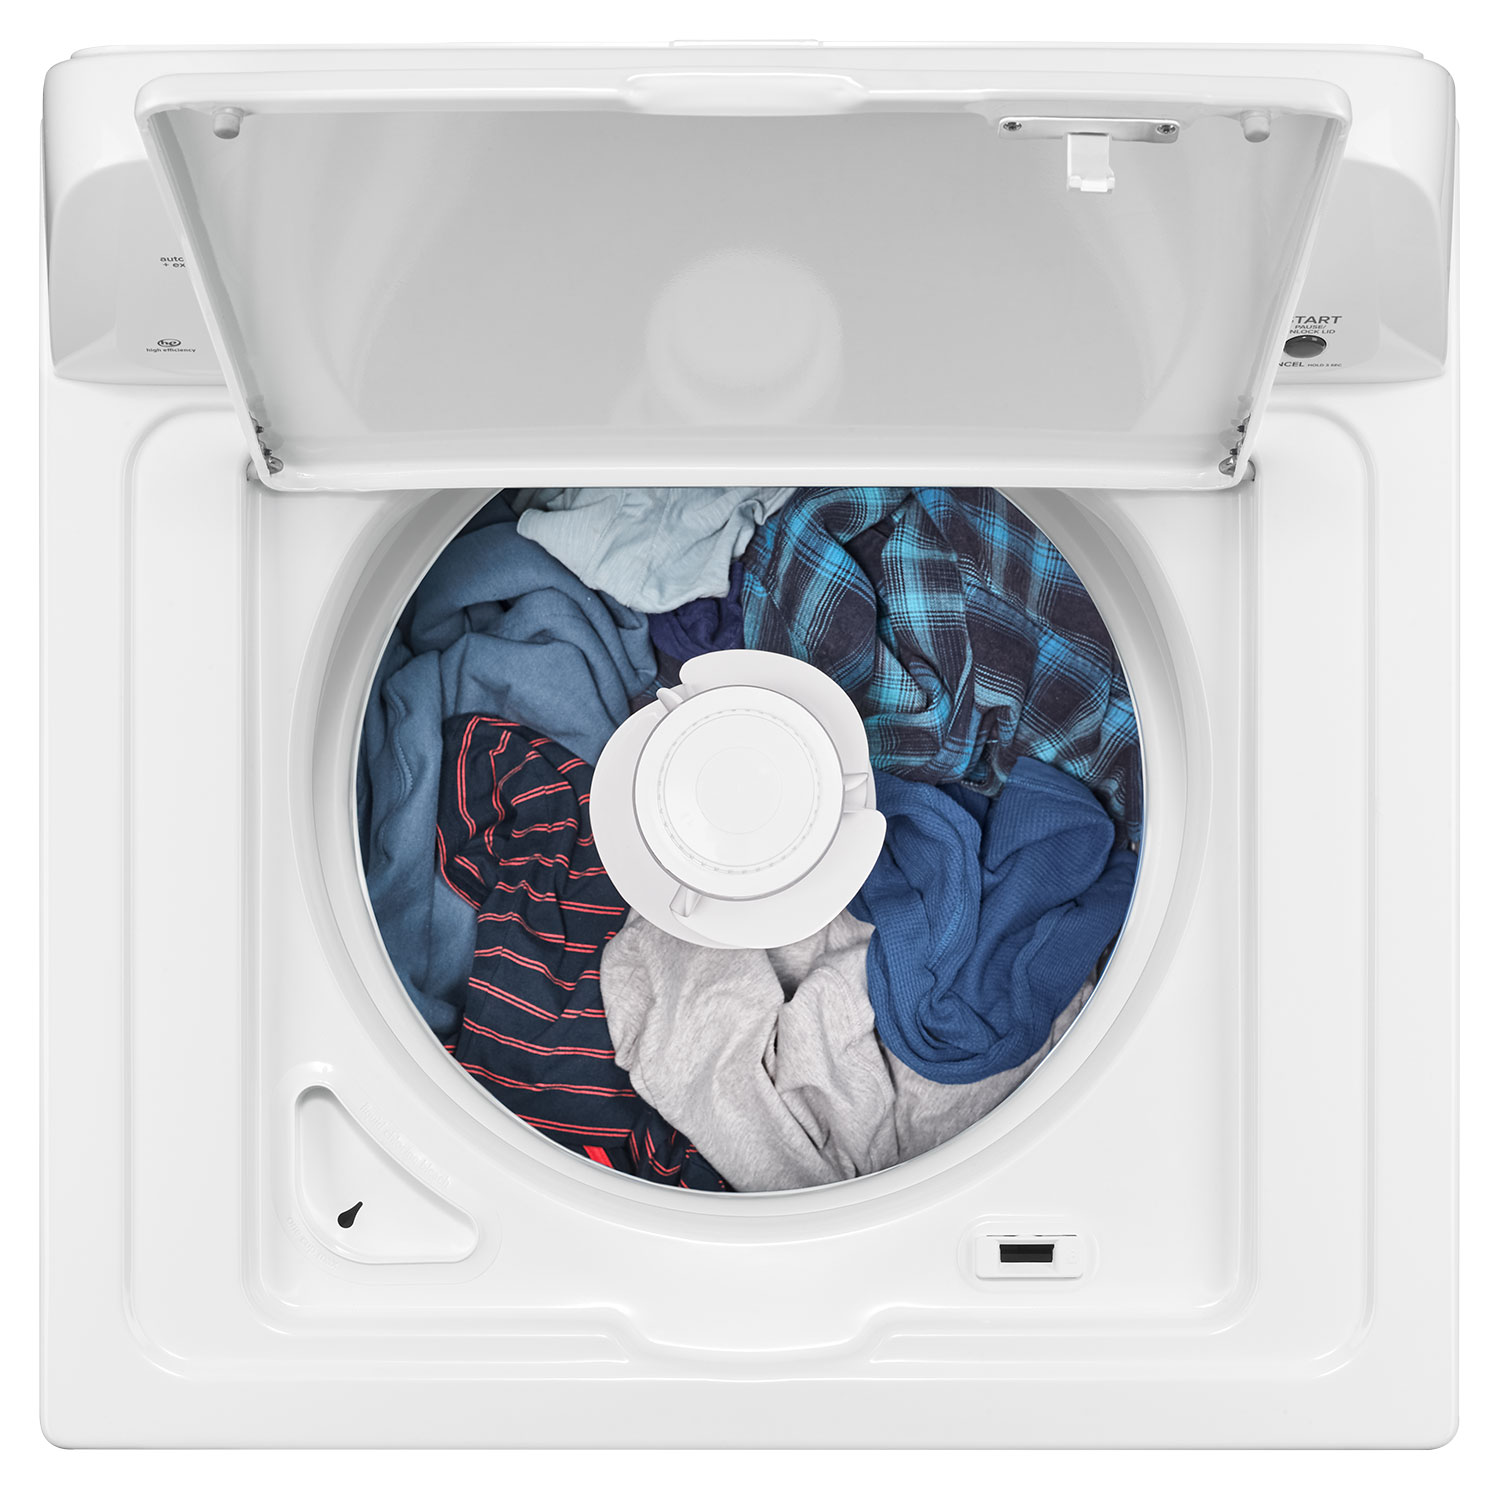 The best top load washer with agitator - Ft Top Load Washer With Dual Action Agitator Ntw4516fw The Brick